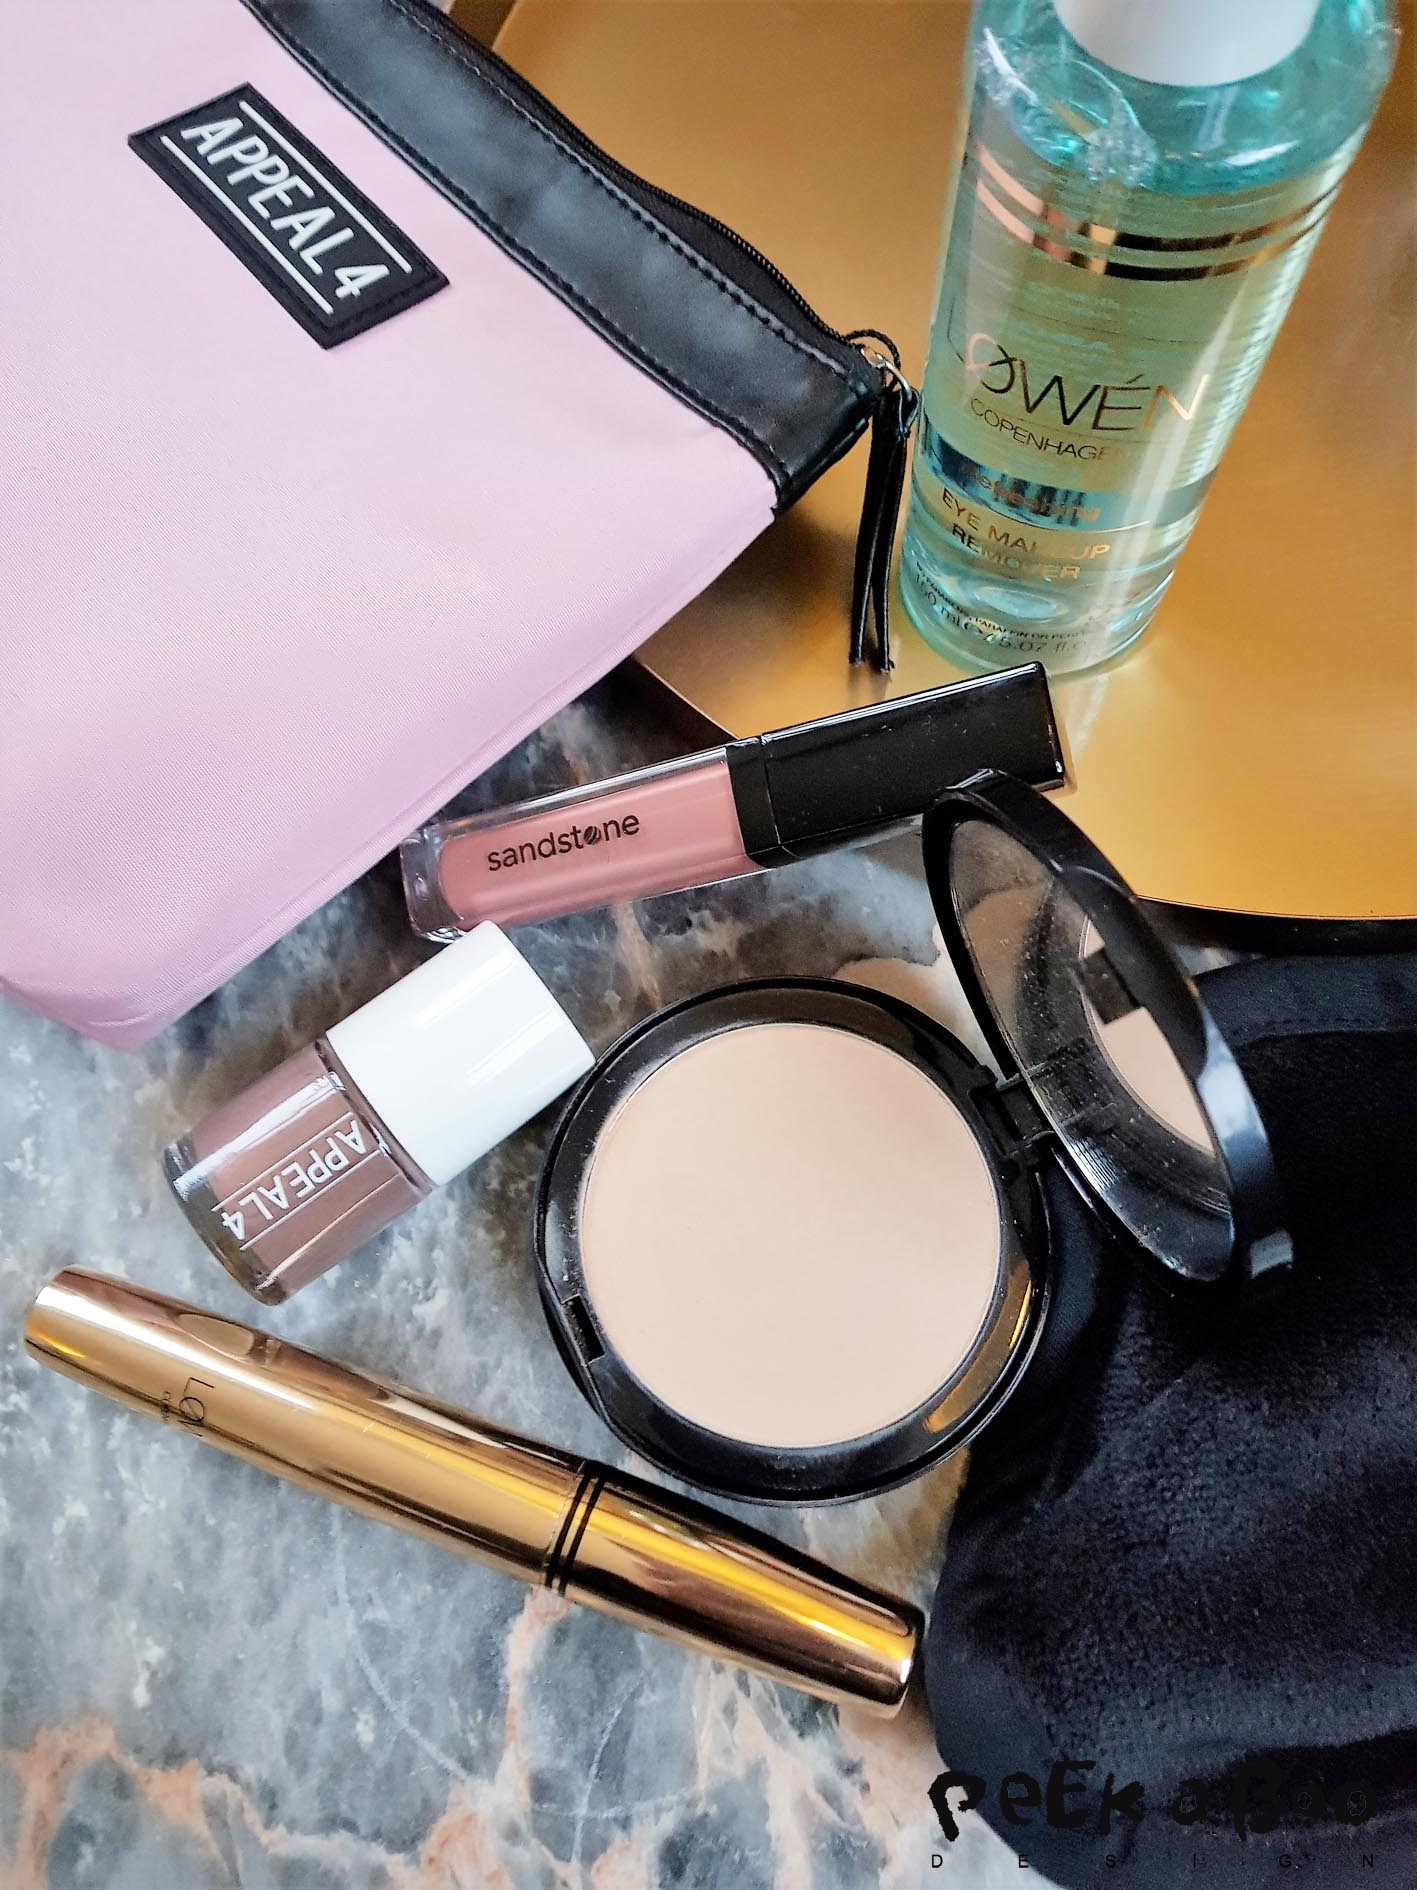 Make-up from the danish allergy certified make-up brand Sandstone is some of my favorites.